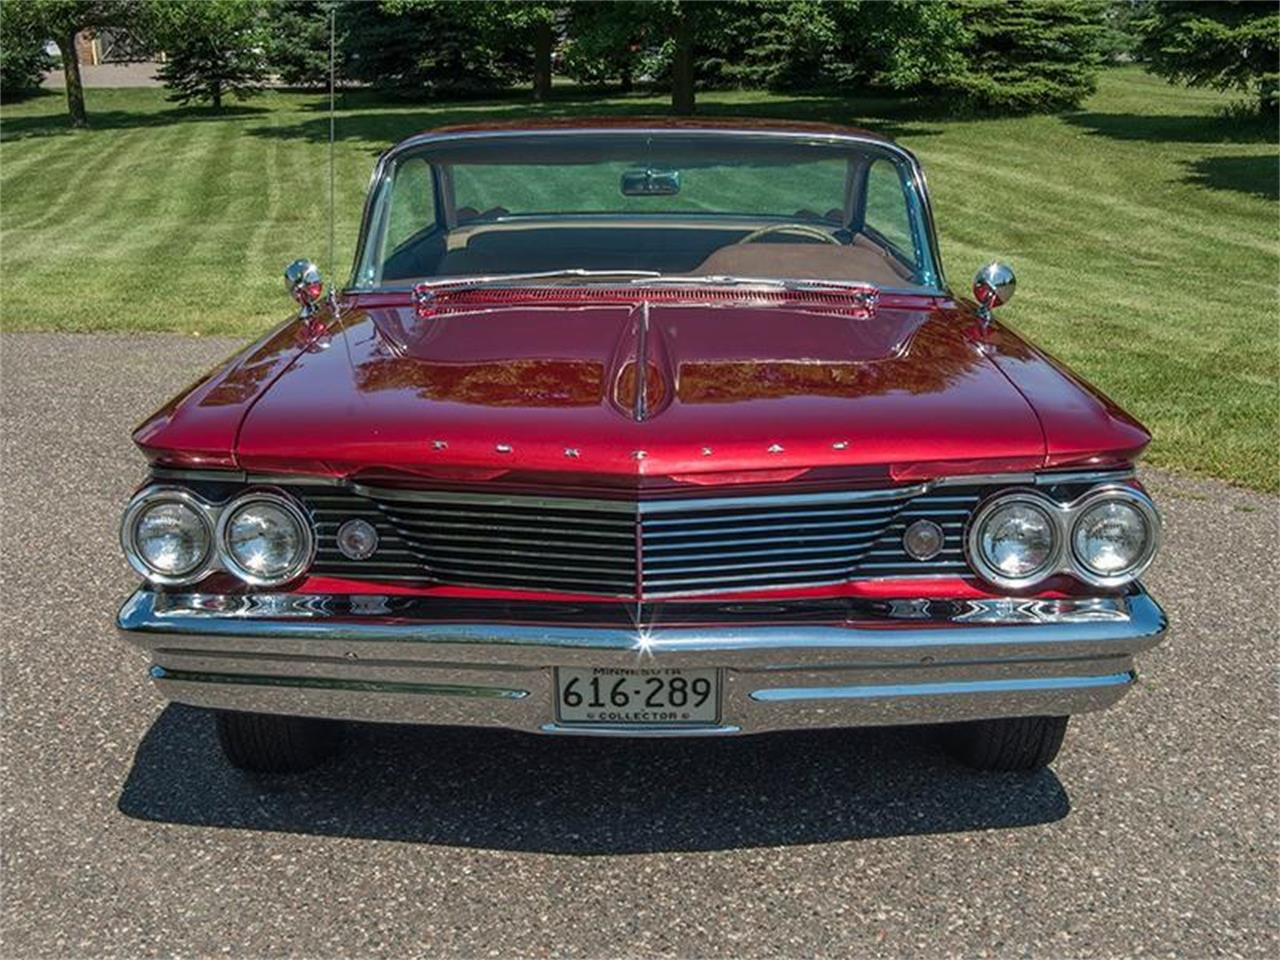 Large Picture of Classic 1960 Pontiac Ventura Offered by Ellingson Motorcars - LHB7